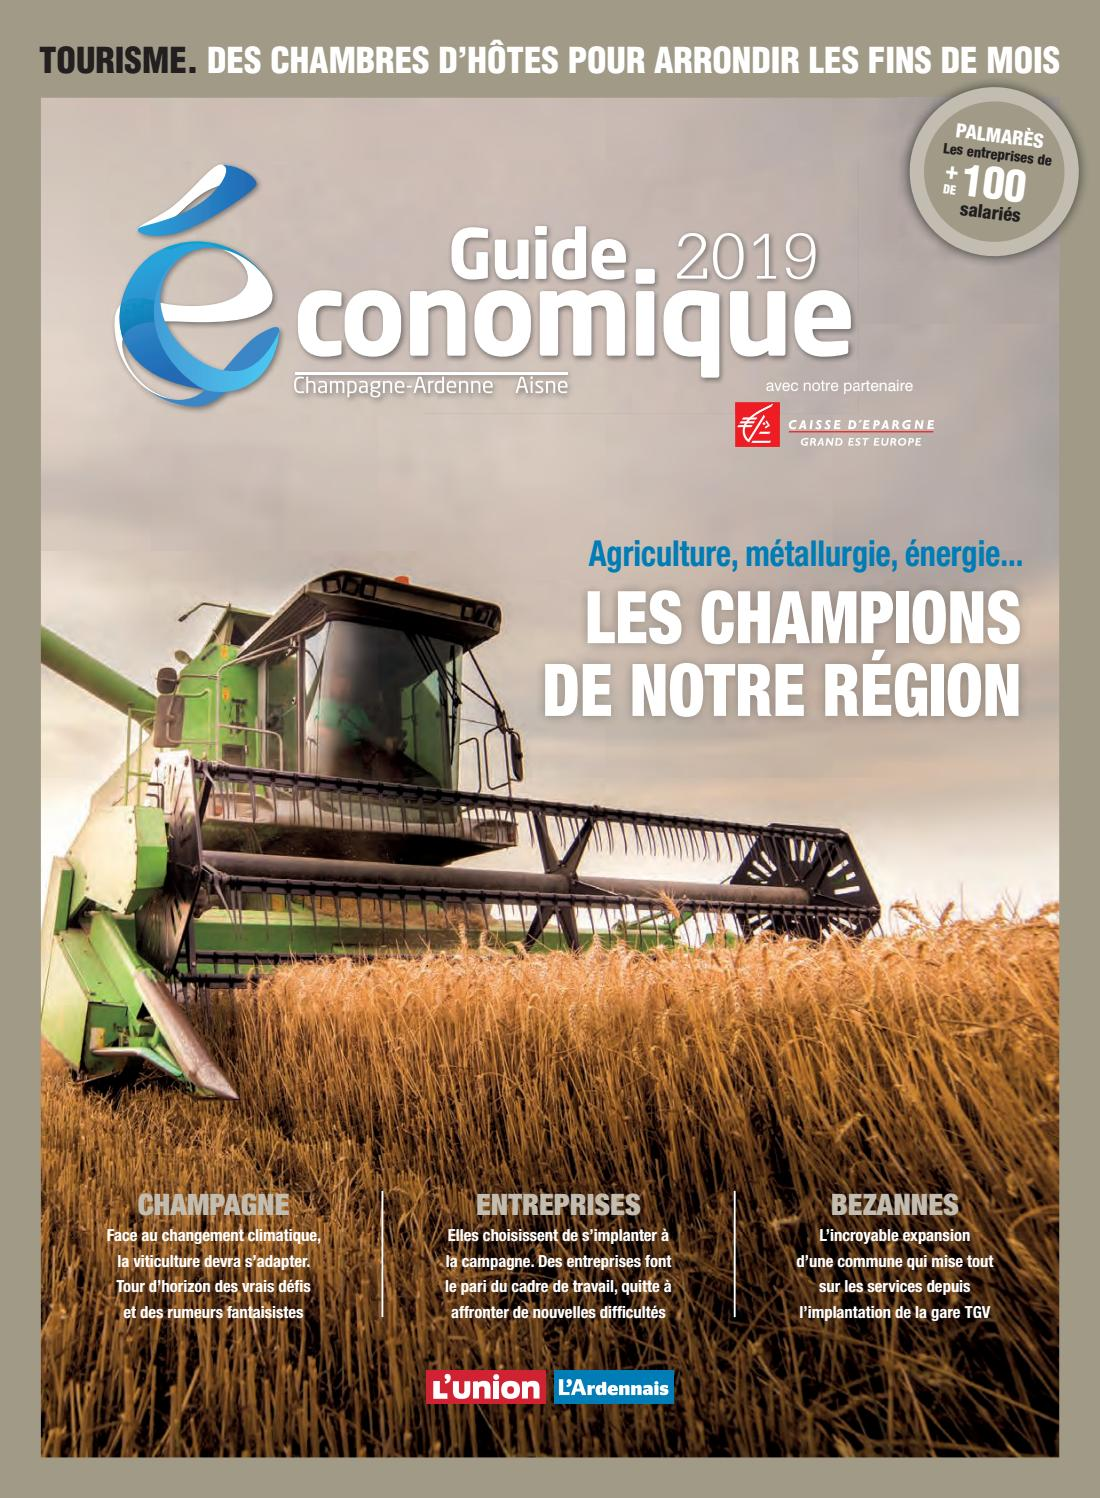 Table Roulante Jardin Best Of Guide Economique by Globalestmedias issuu Of 32 Best Of Table Roulante Jardin